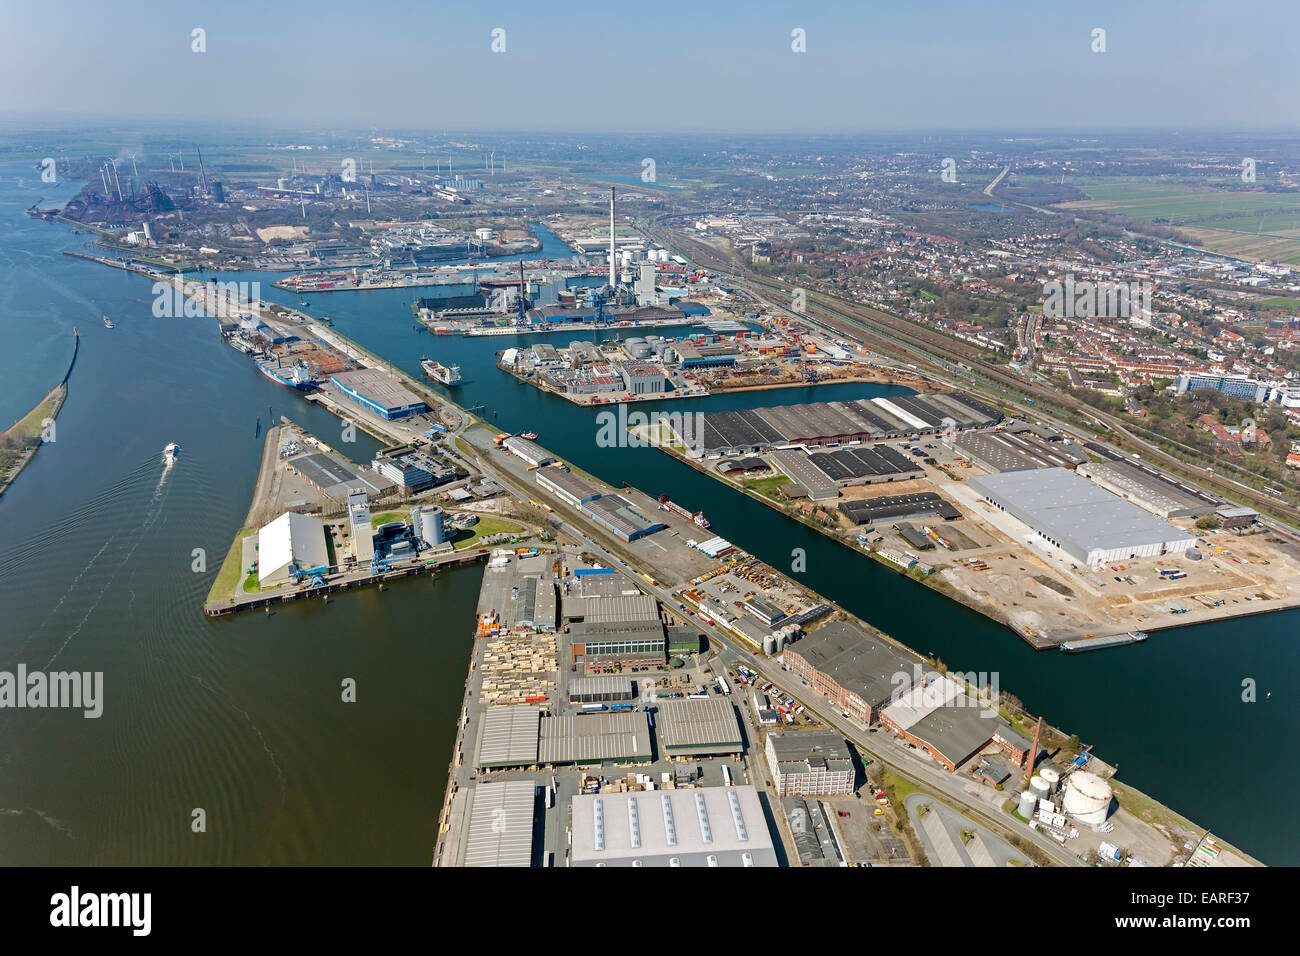 Aerial view, Port of Bremen, harbours on the Weser River, Bremen, Bremen, Germany - Stock Image